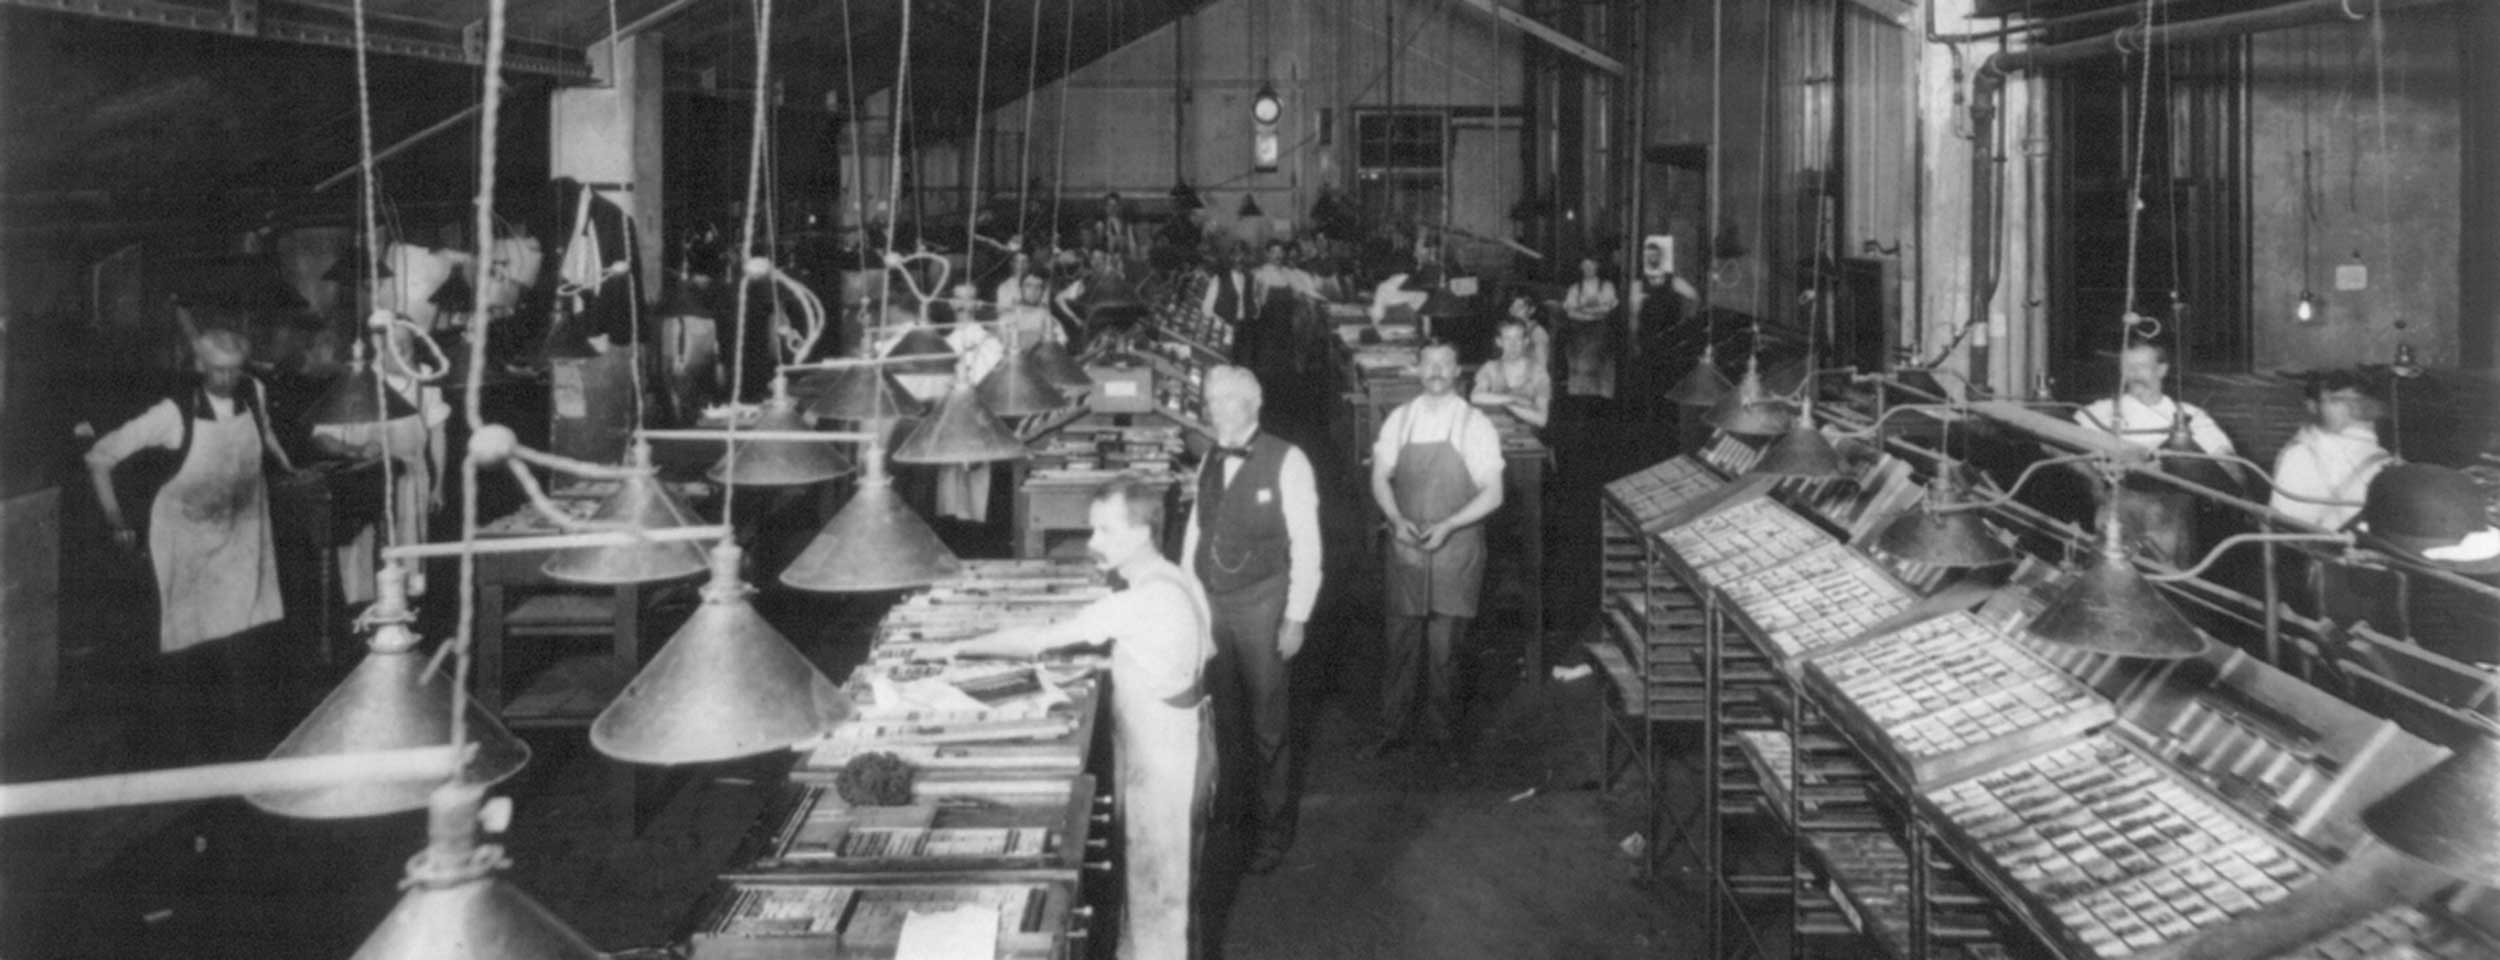 Composing room of the New York Herald (no date recorded) Photo: Library of Congress